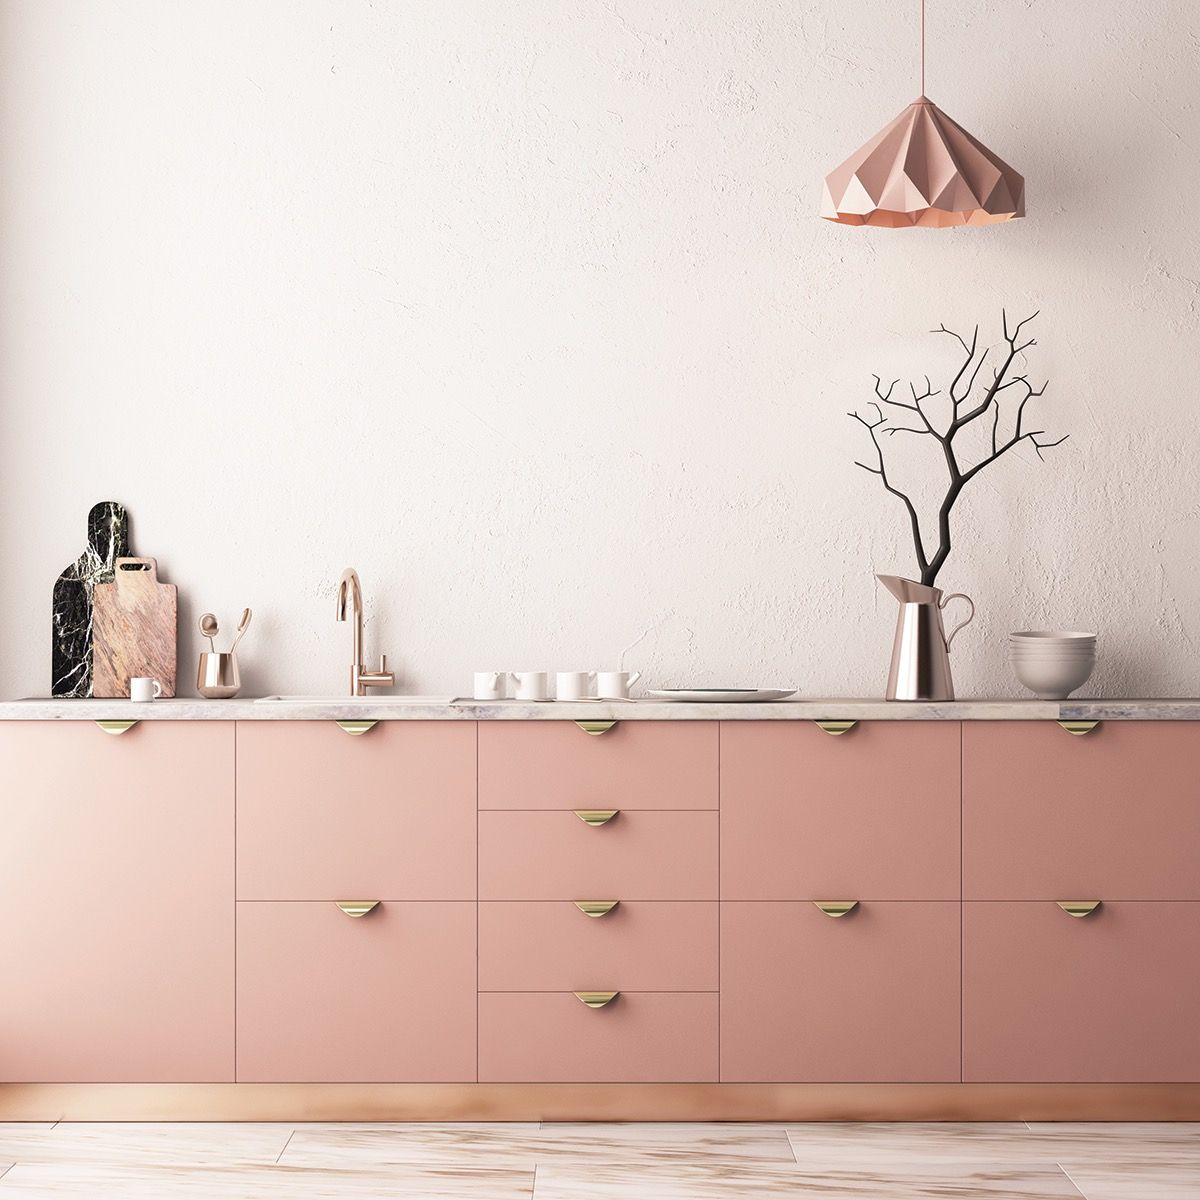 51 Inspirational Pink Kitchens With Tips Accessories To Help You Design Yours Interior Design Kitchen Pink Kitchen Cabinets Pink Kitchen